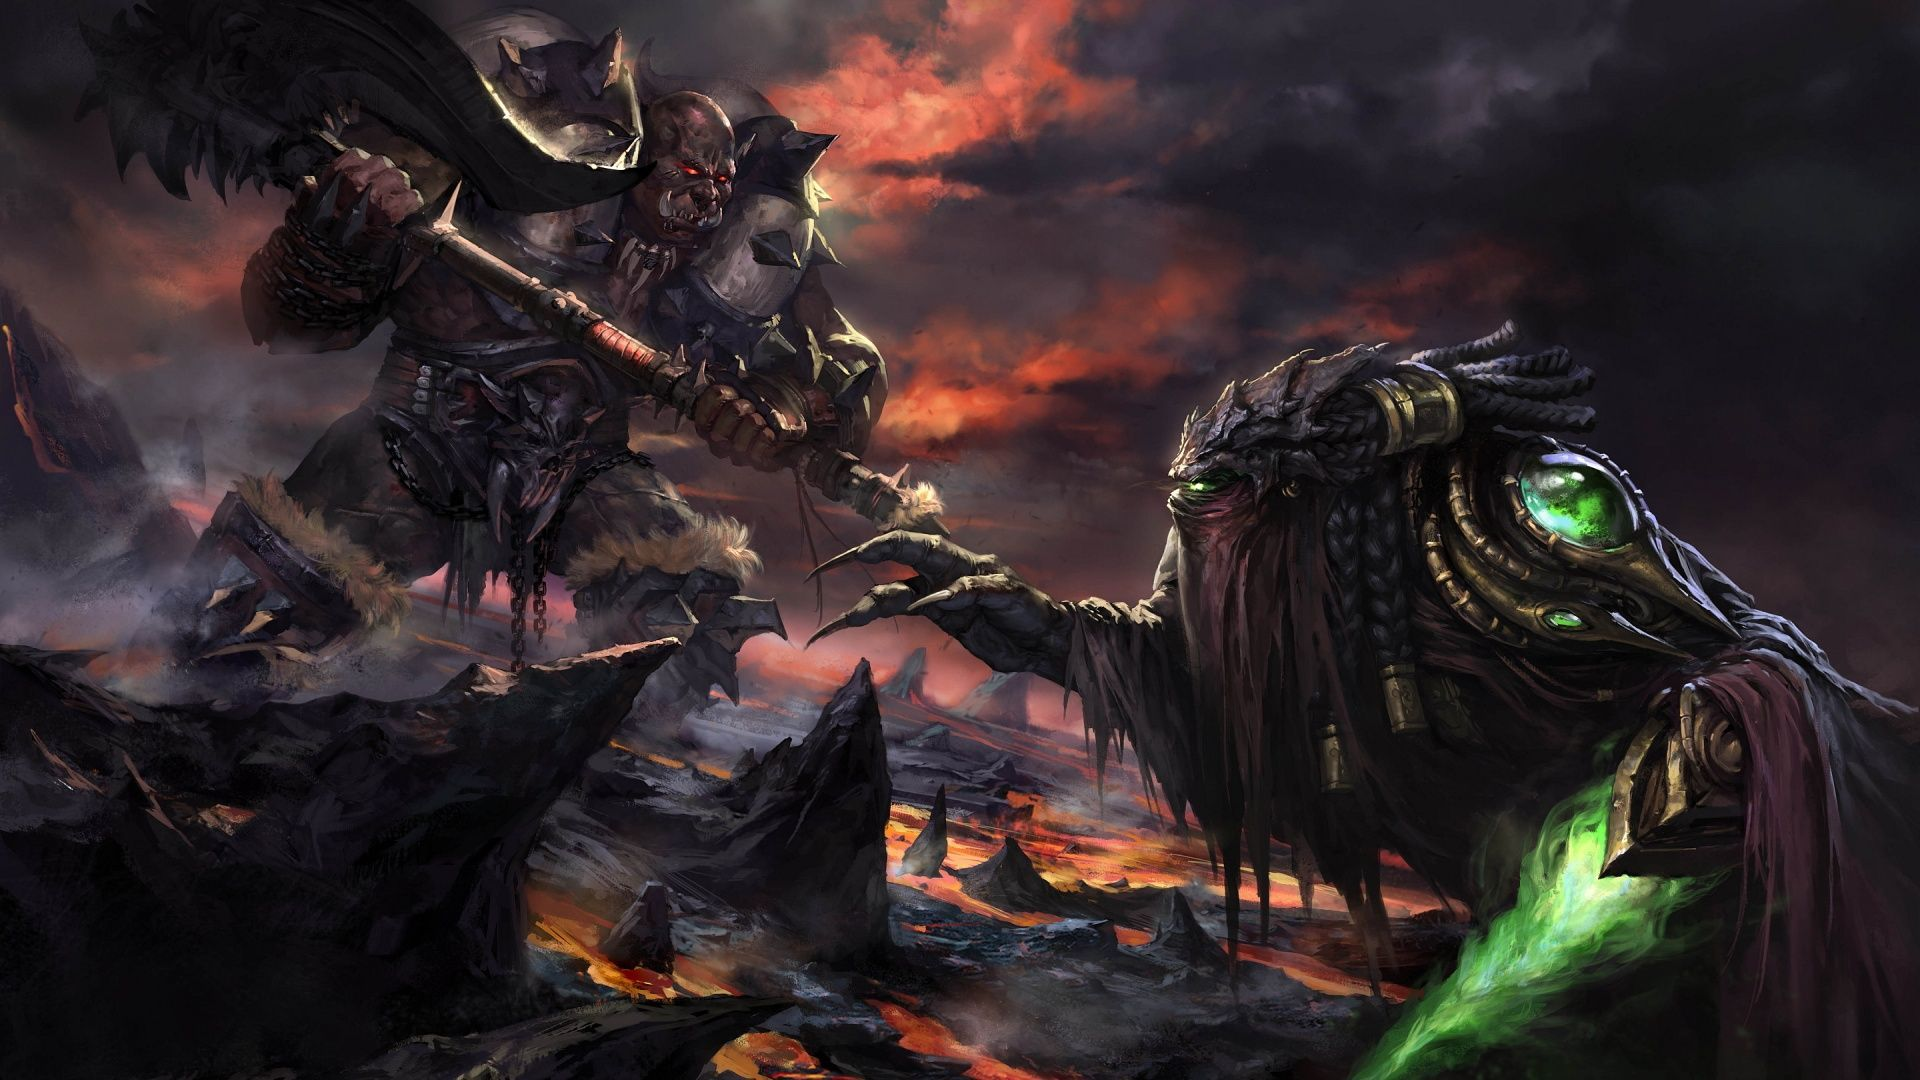 Starcraft 2 Wallpapers Hd Posted By Michelle Mercado